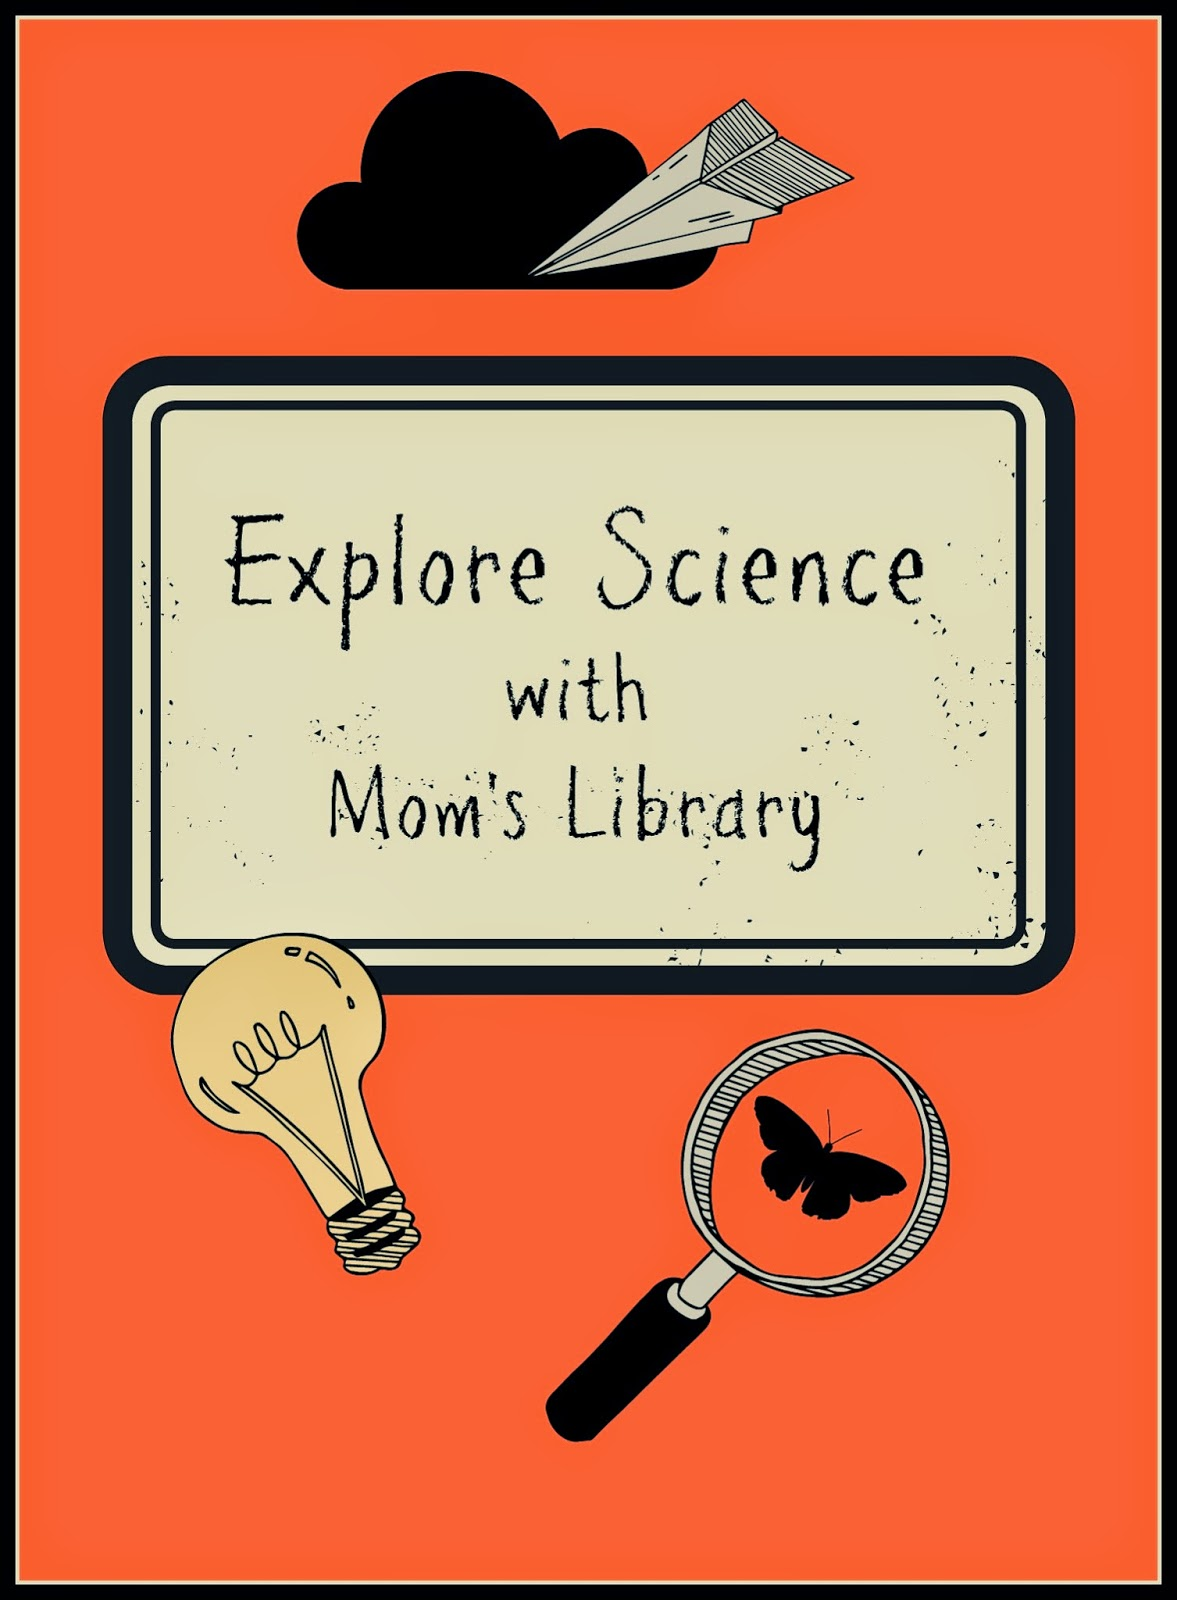 Explore Science with Mom's Library